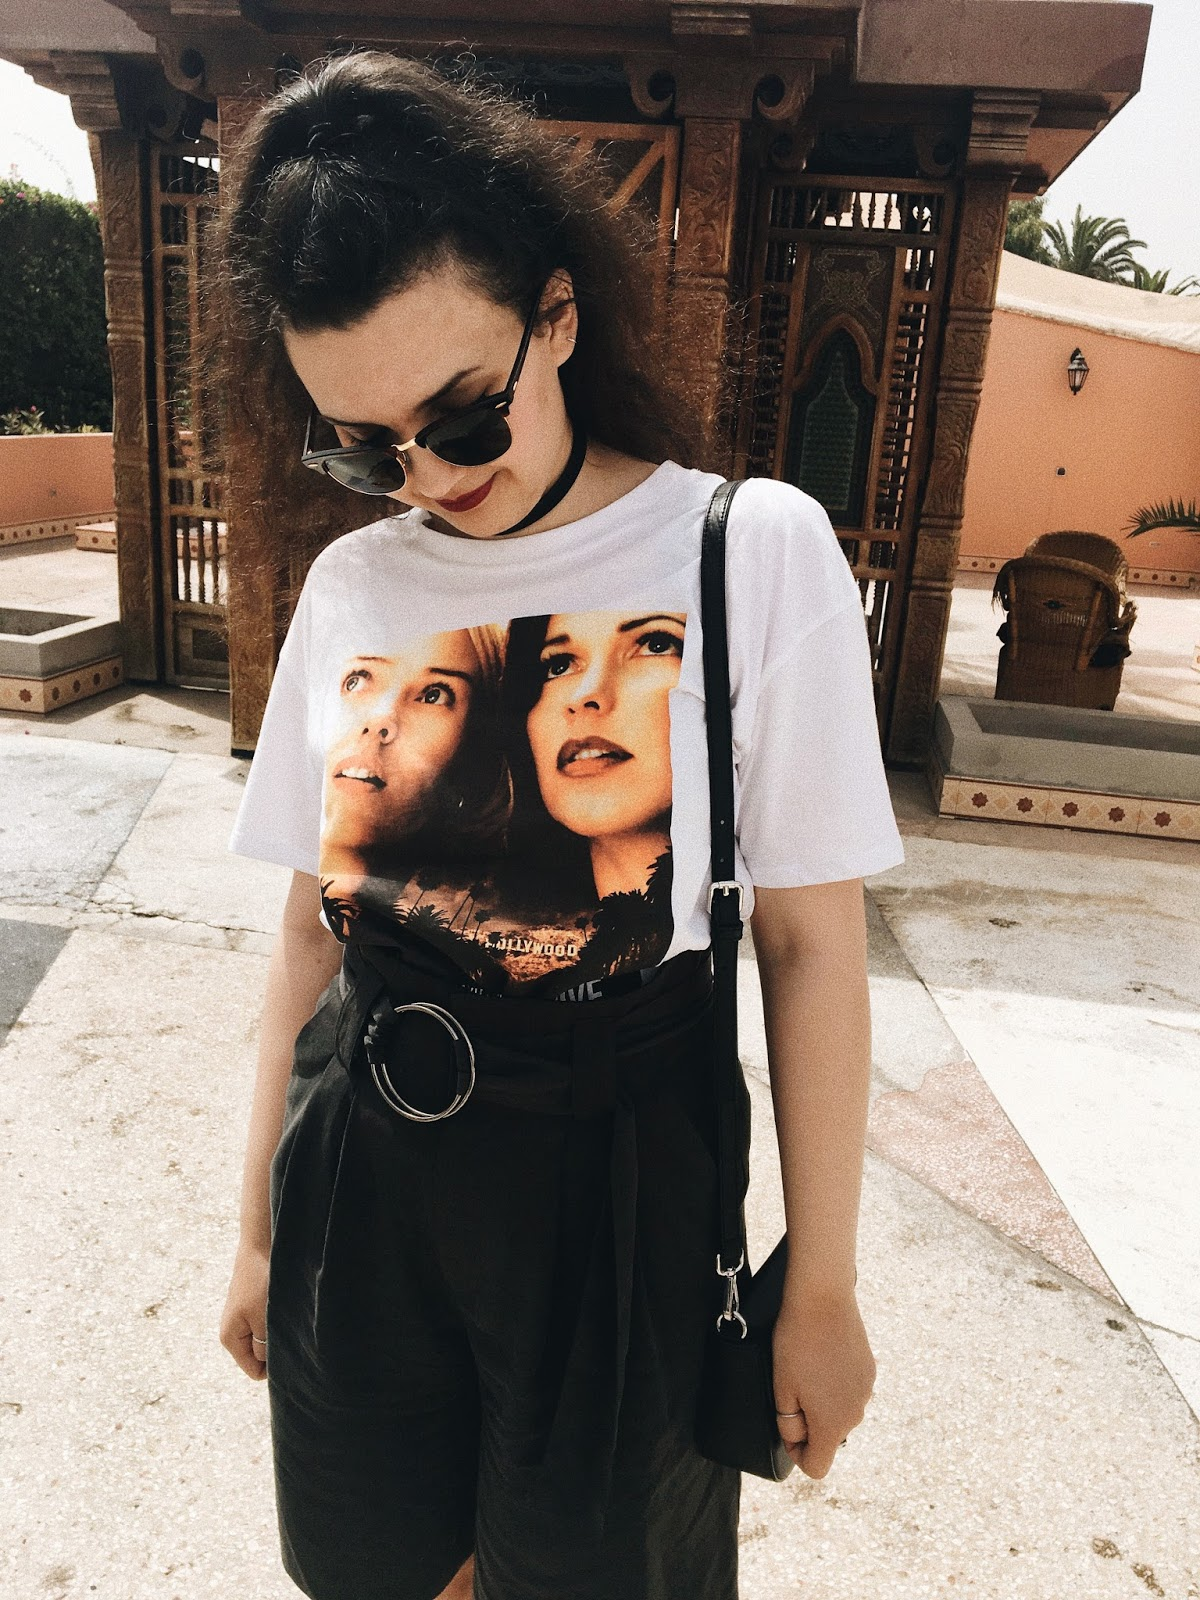 brooklyn is burning, morocco, agadir, holiday, ray-ban clubmasters, zara pre-autumn, high waisted shorts, mulholland drive t-shirt, david lynch, plateau black sandals from shoebizz copenhagen, brunette, fashion blogger, personal style blogger